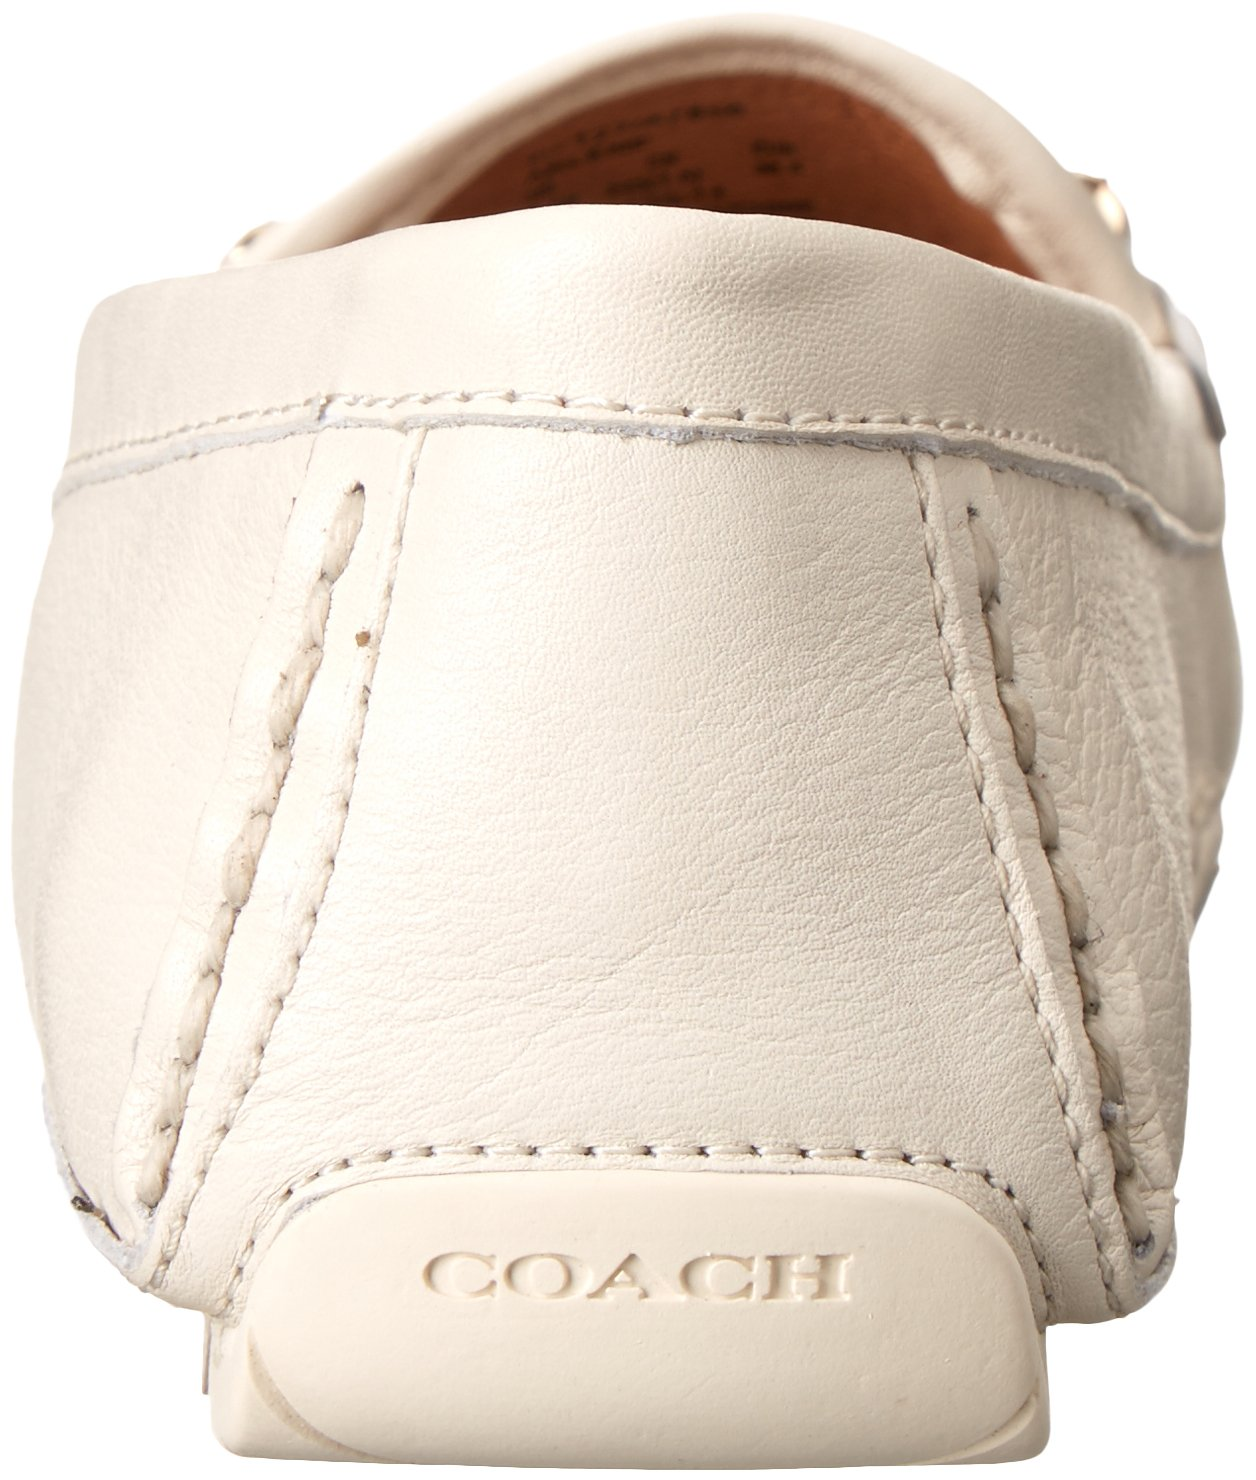 COACH Women's Arlene Chalk Pebble Grain Leather Flat by Coach (Image #2)